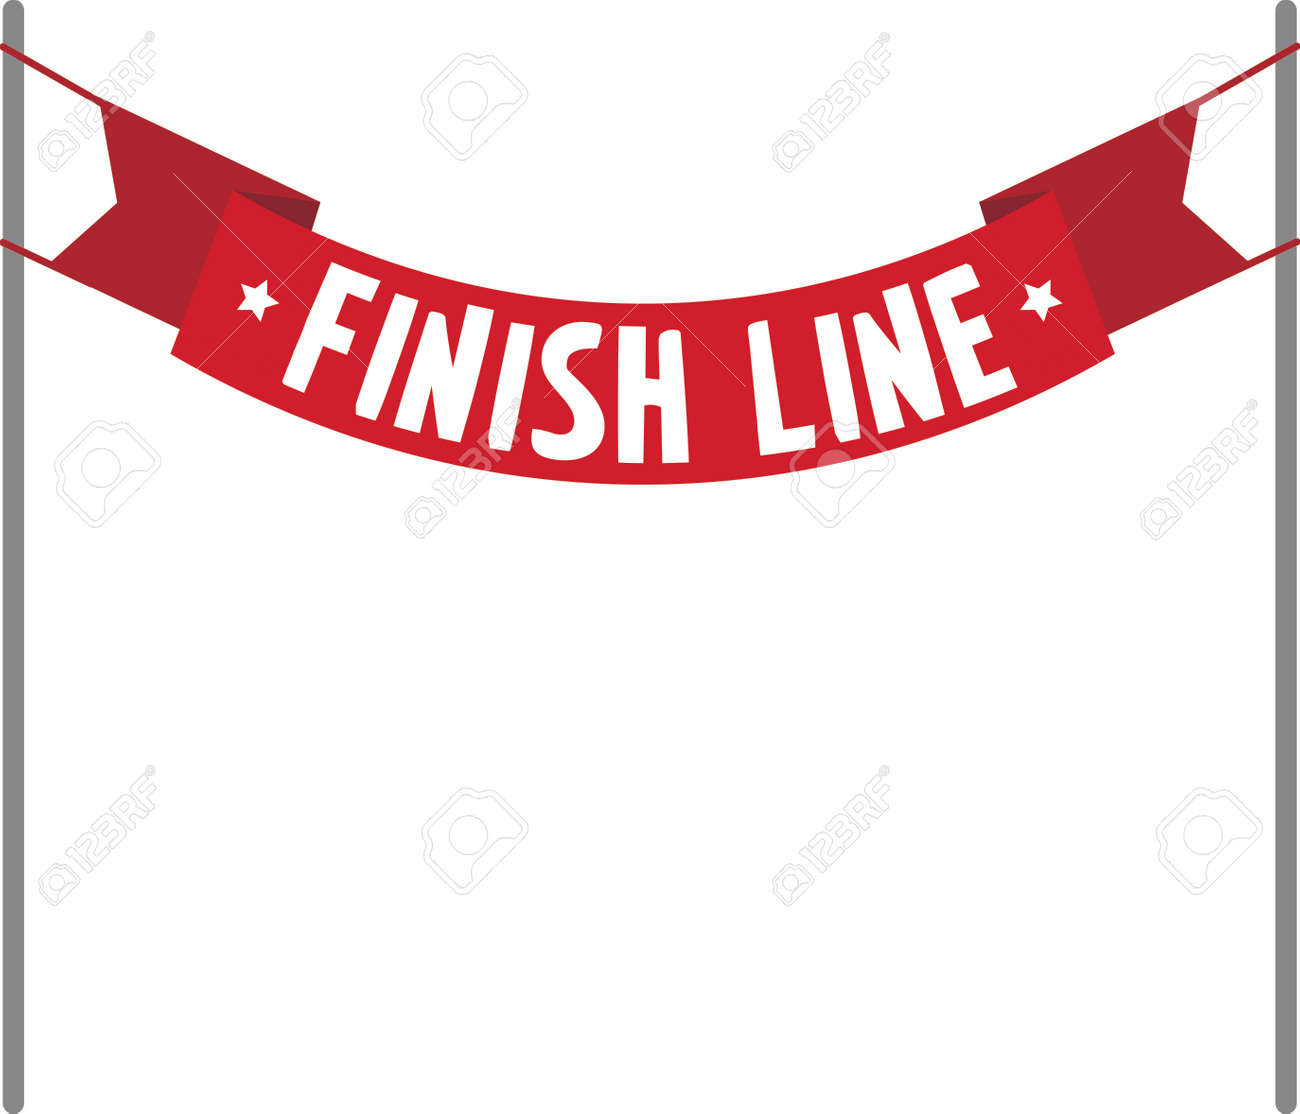 blank caption red finish line banner royalty free cliparts